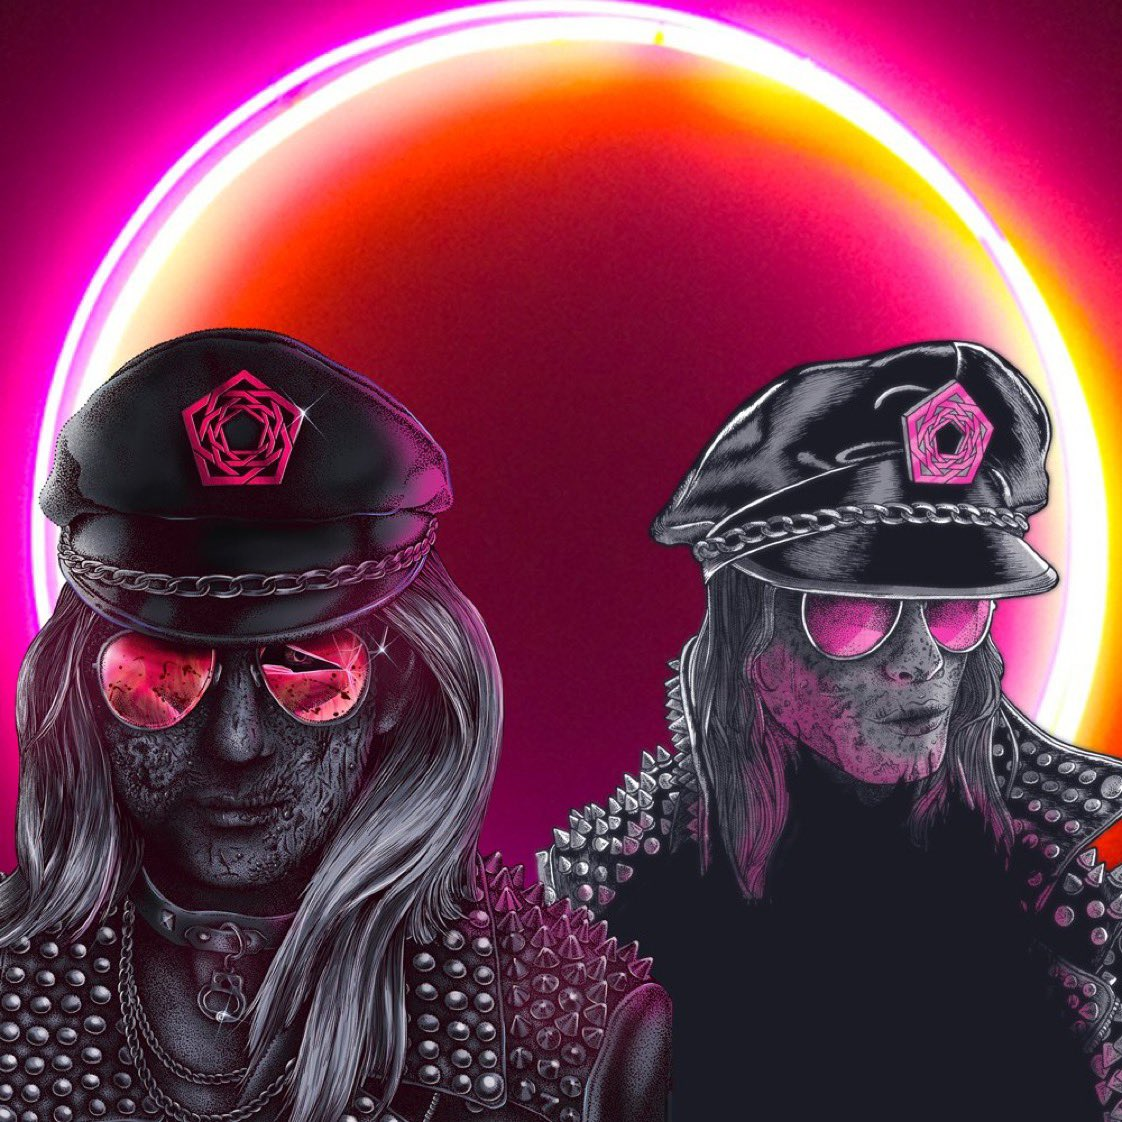 Carpenter Brut (@carpenter_brut) | Twitter